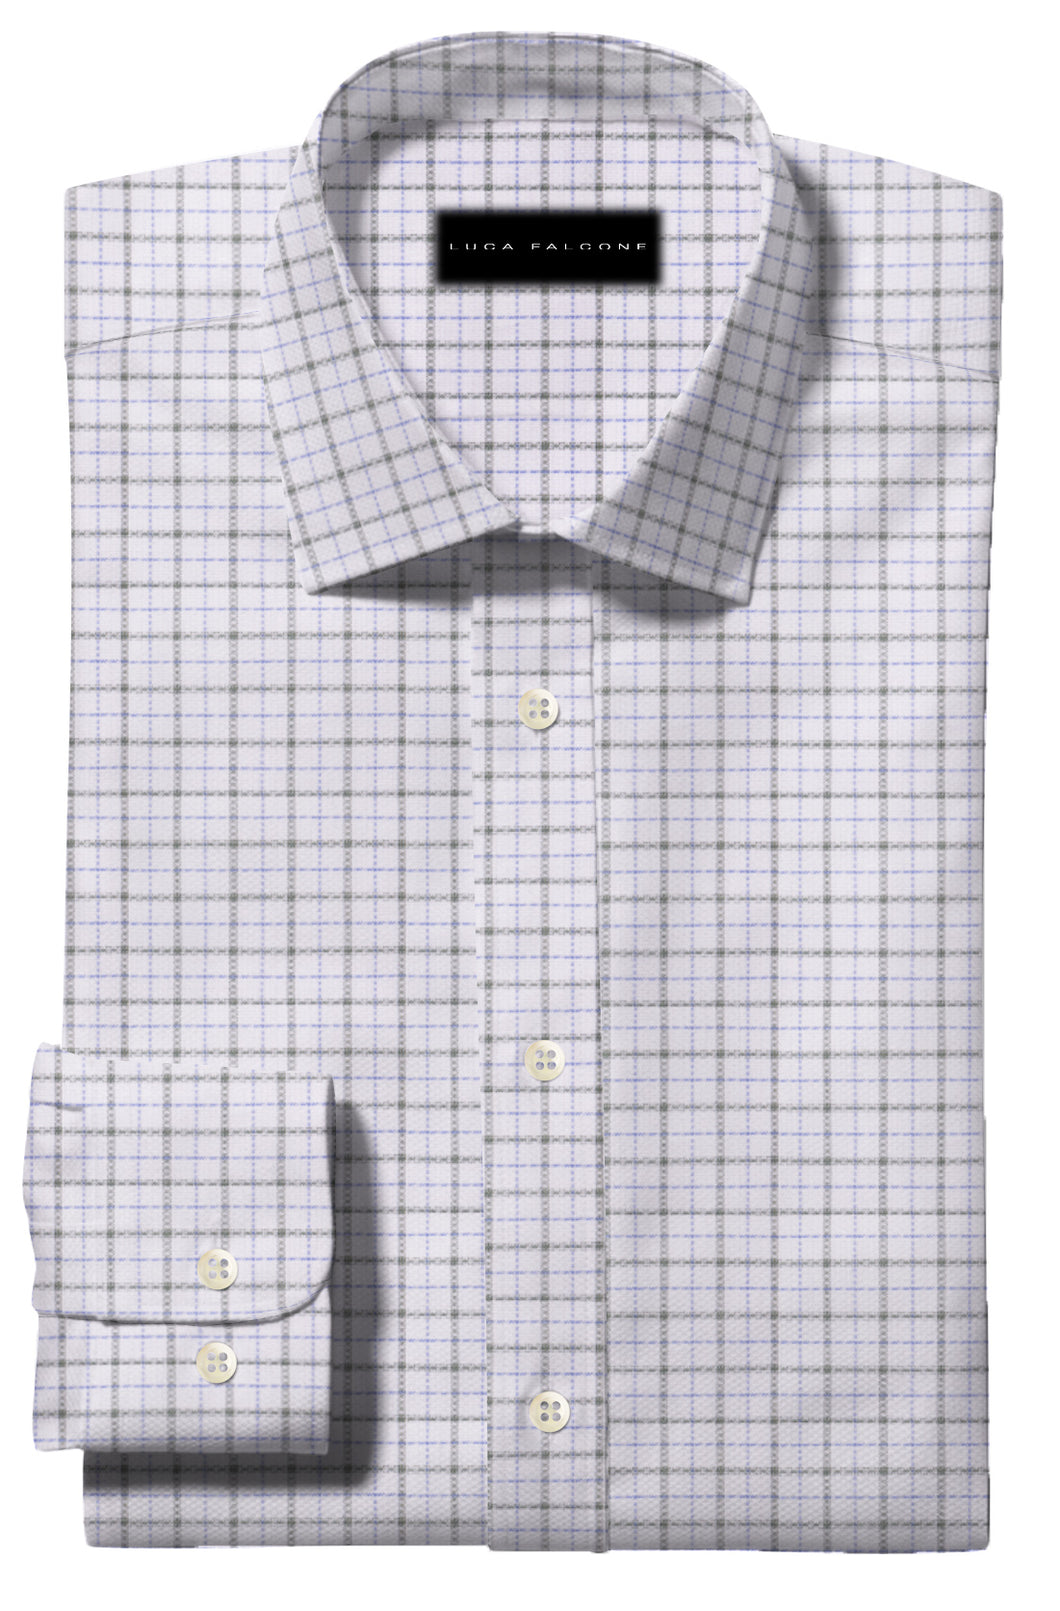 Grey and Blue Check Pattern